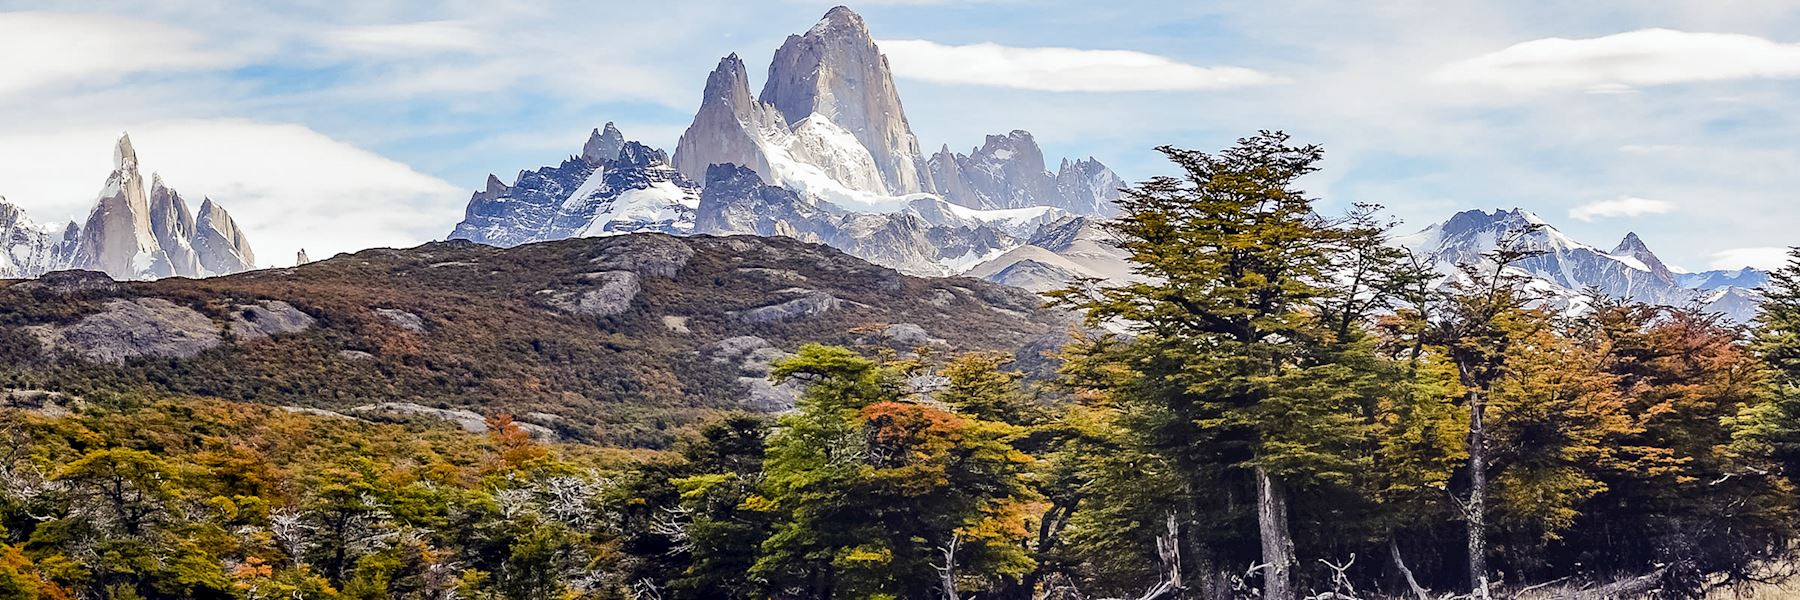 Visit Chacabuco Valley & Parque Patagonia, Chile